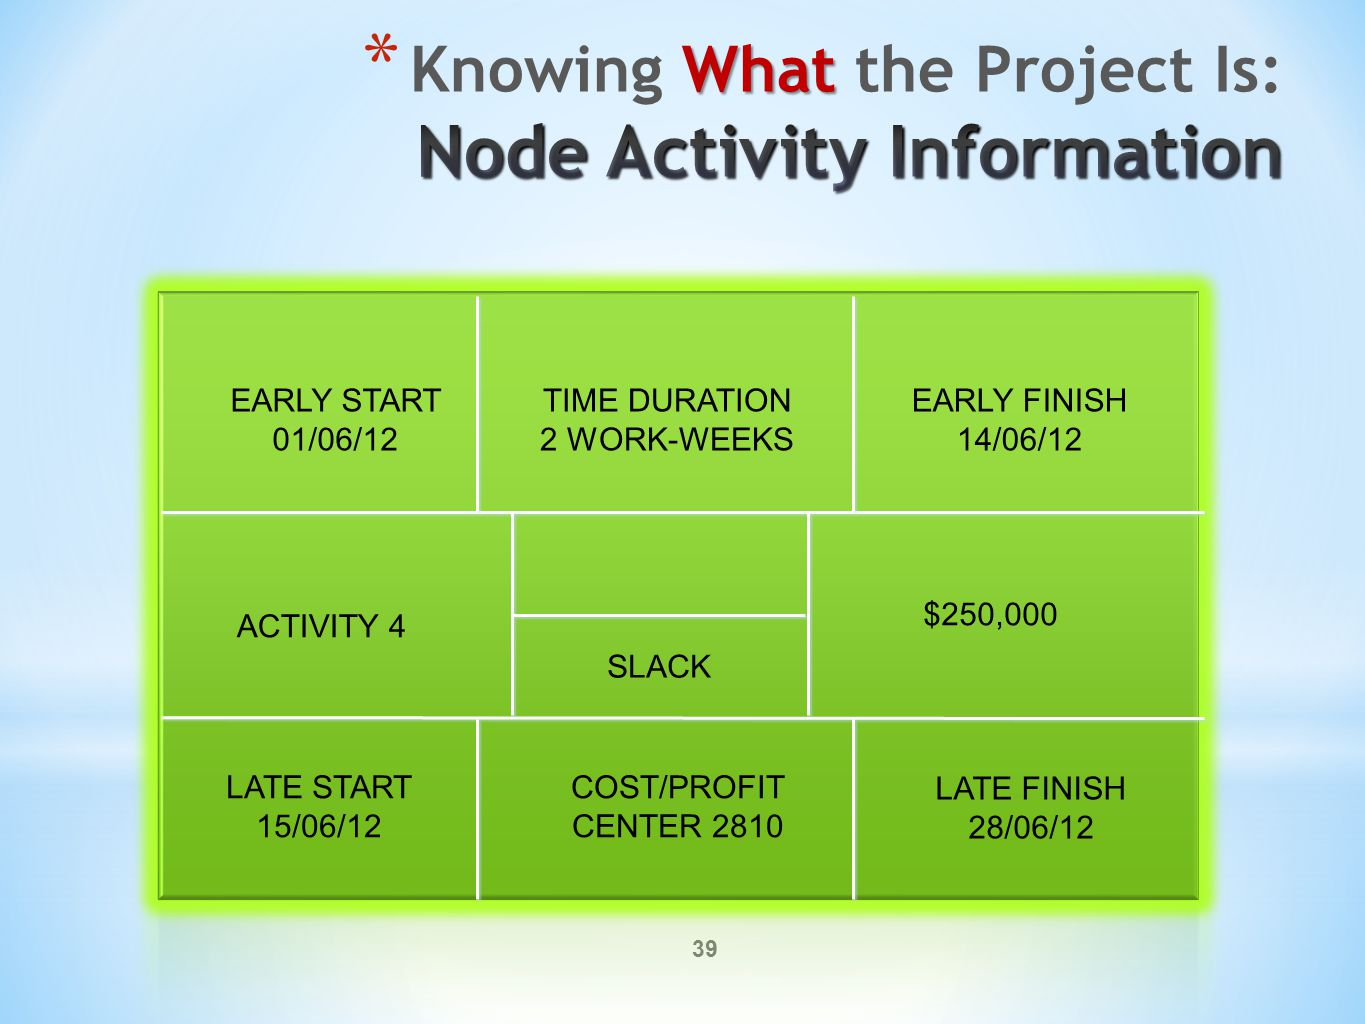 39 EARLY START 01/06/12 TIME DURATION 2 WORK-WEEKS EARLY FINISH 14/06/12 ACTIVITY 4 $250,000 LATE START 15/06/12 COST/PROFIT CENTER 2810 LATE FINISH 28/06/12 SLACK